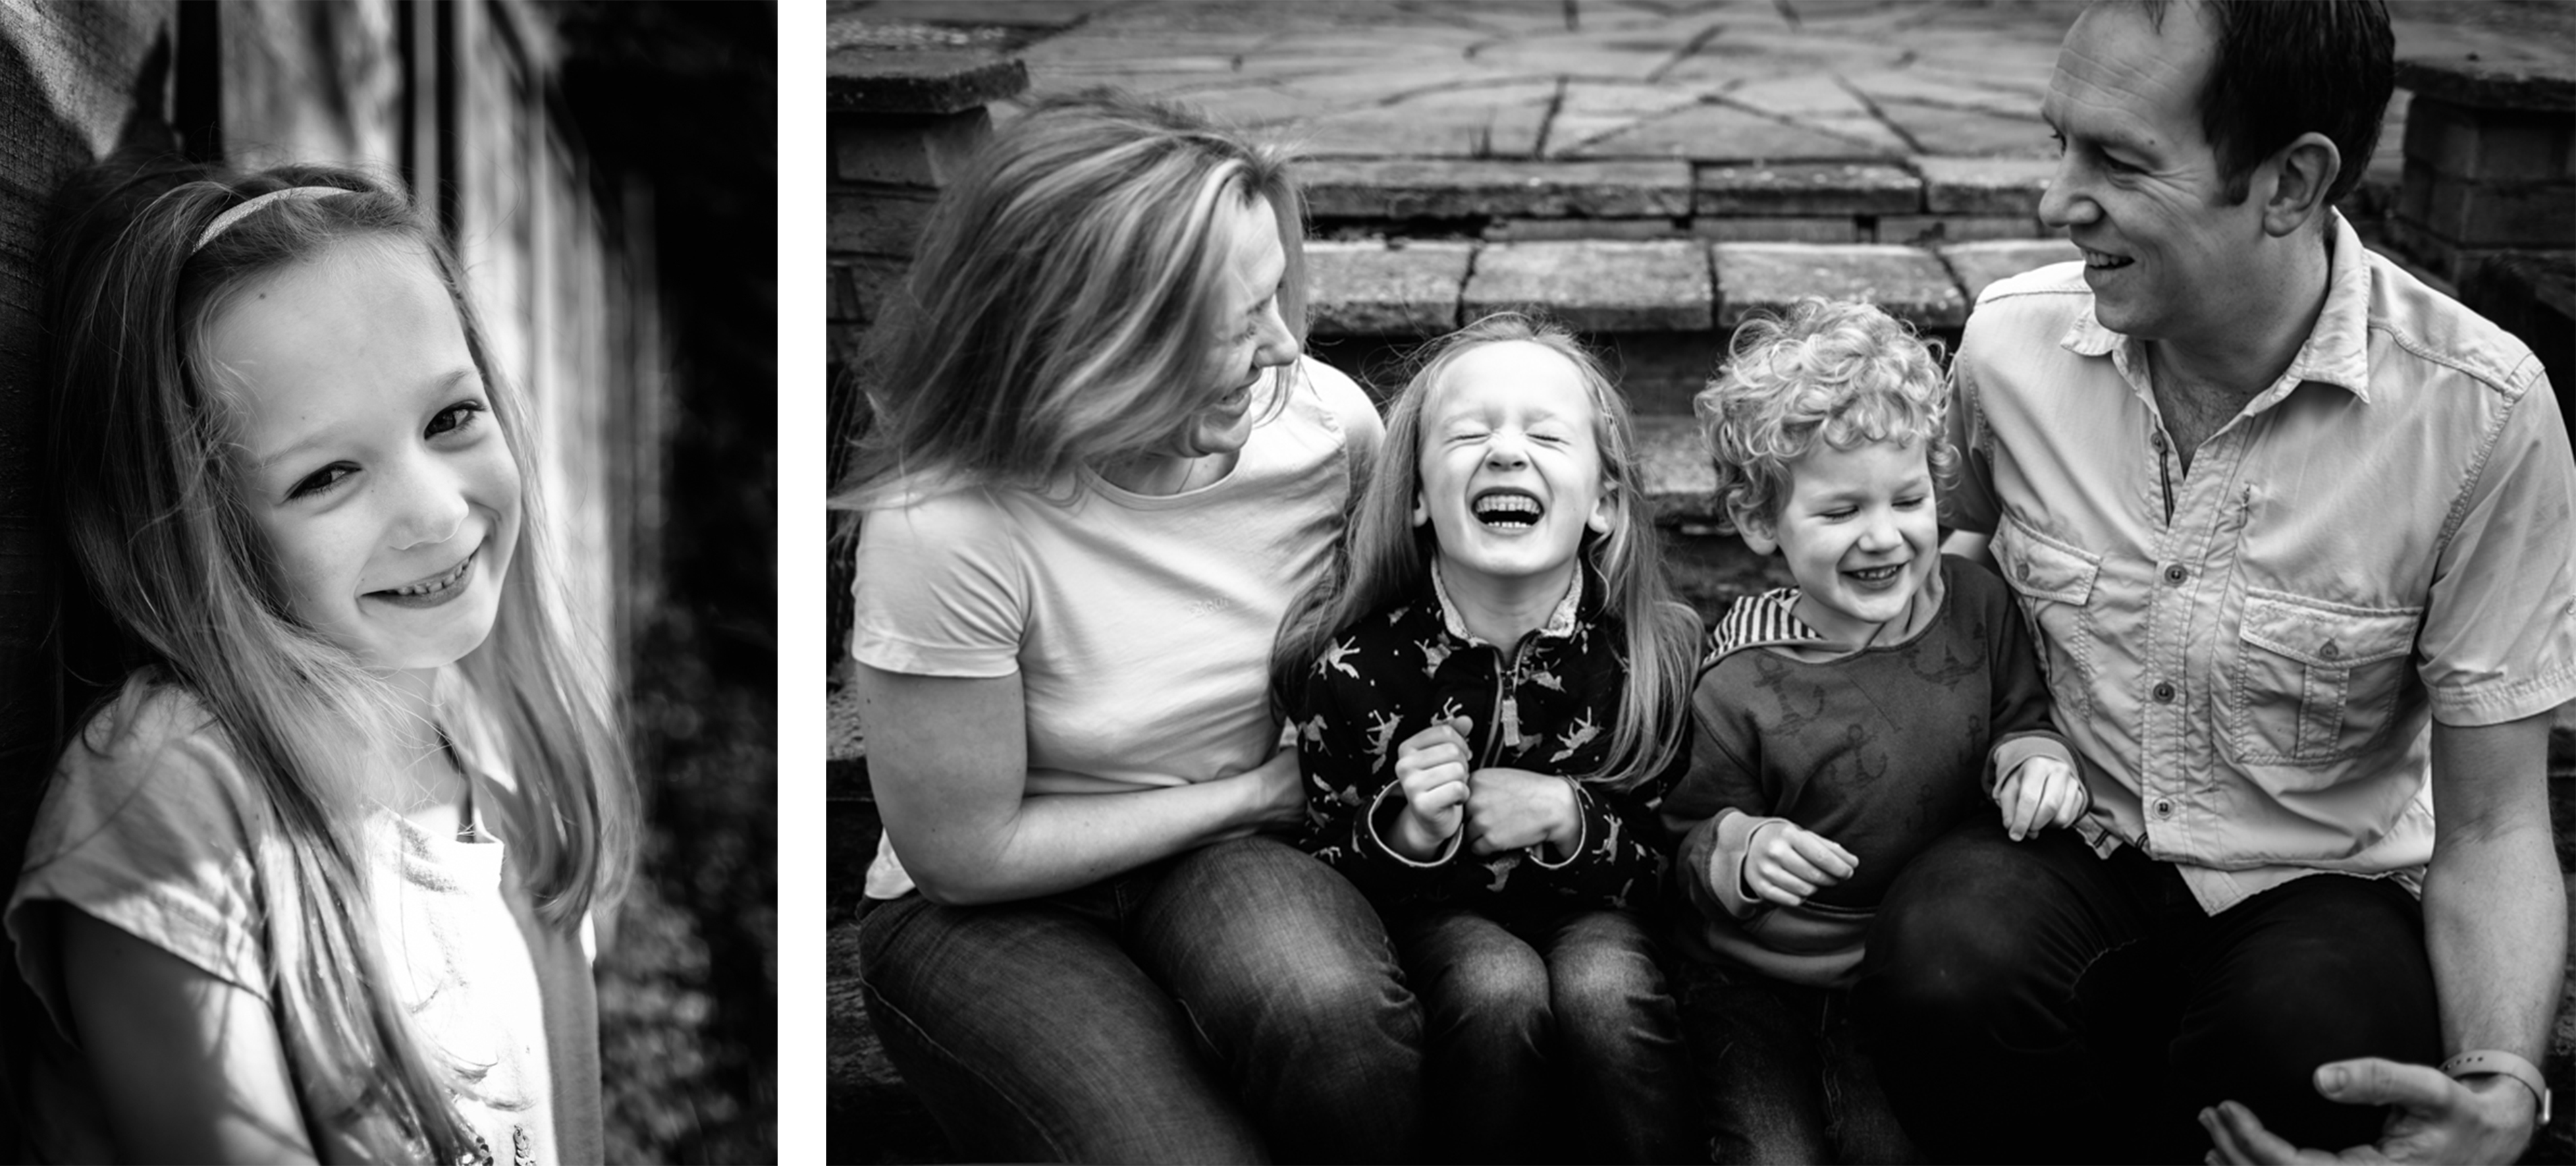 Amersham Buckinghamshire Hertfordshire family fine art lifestyle black and white photography